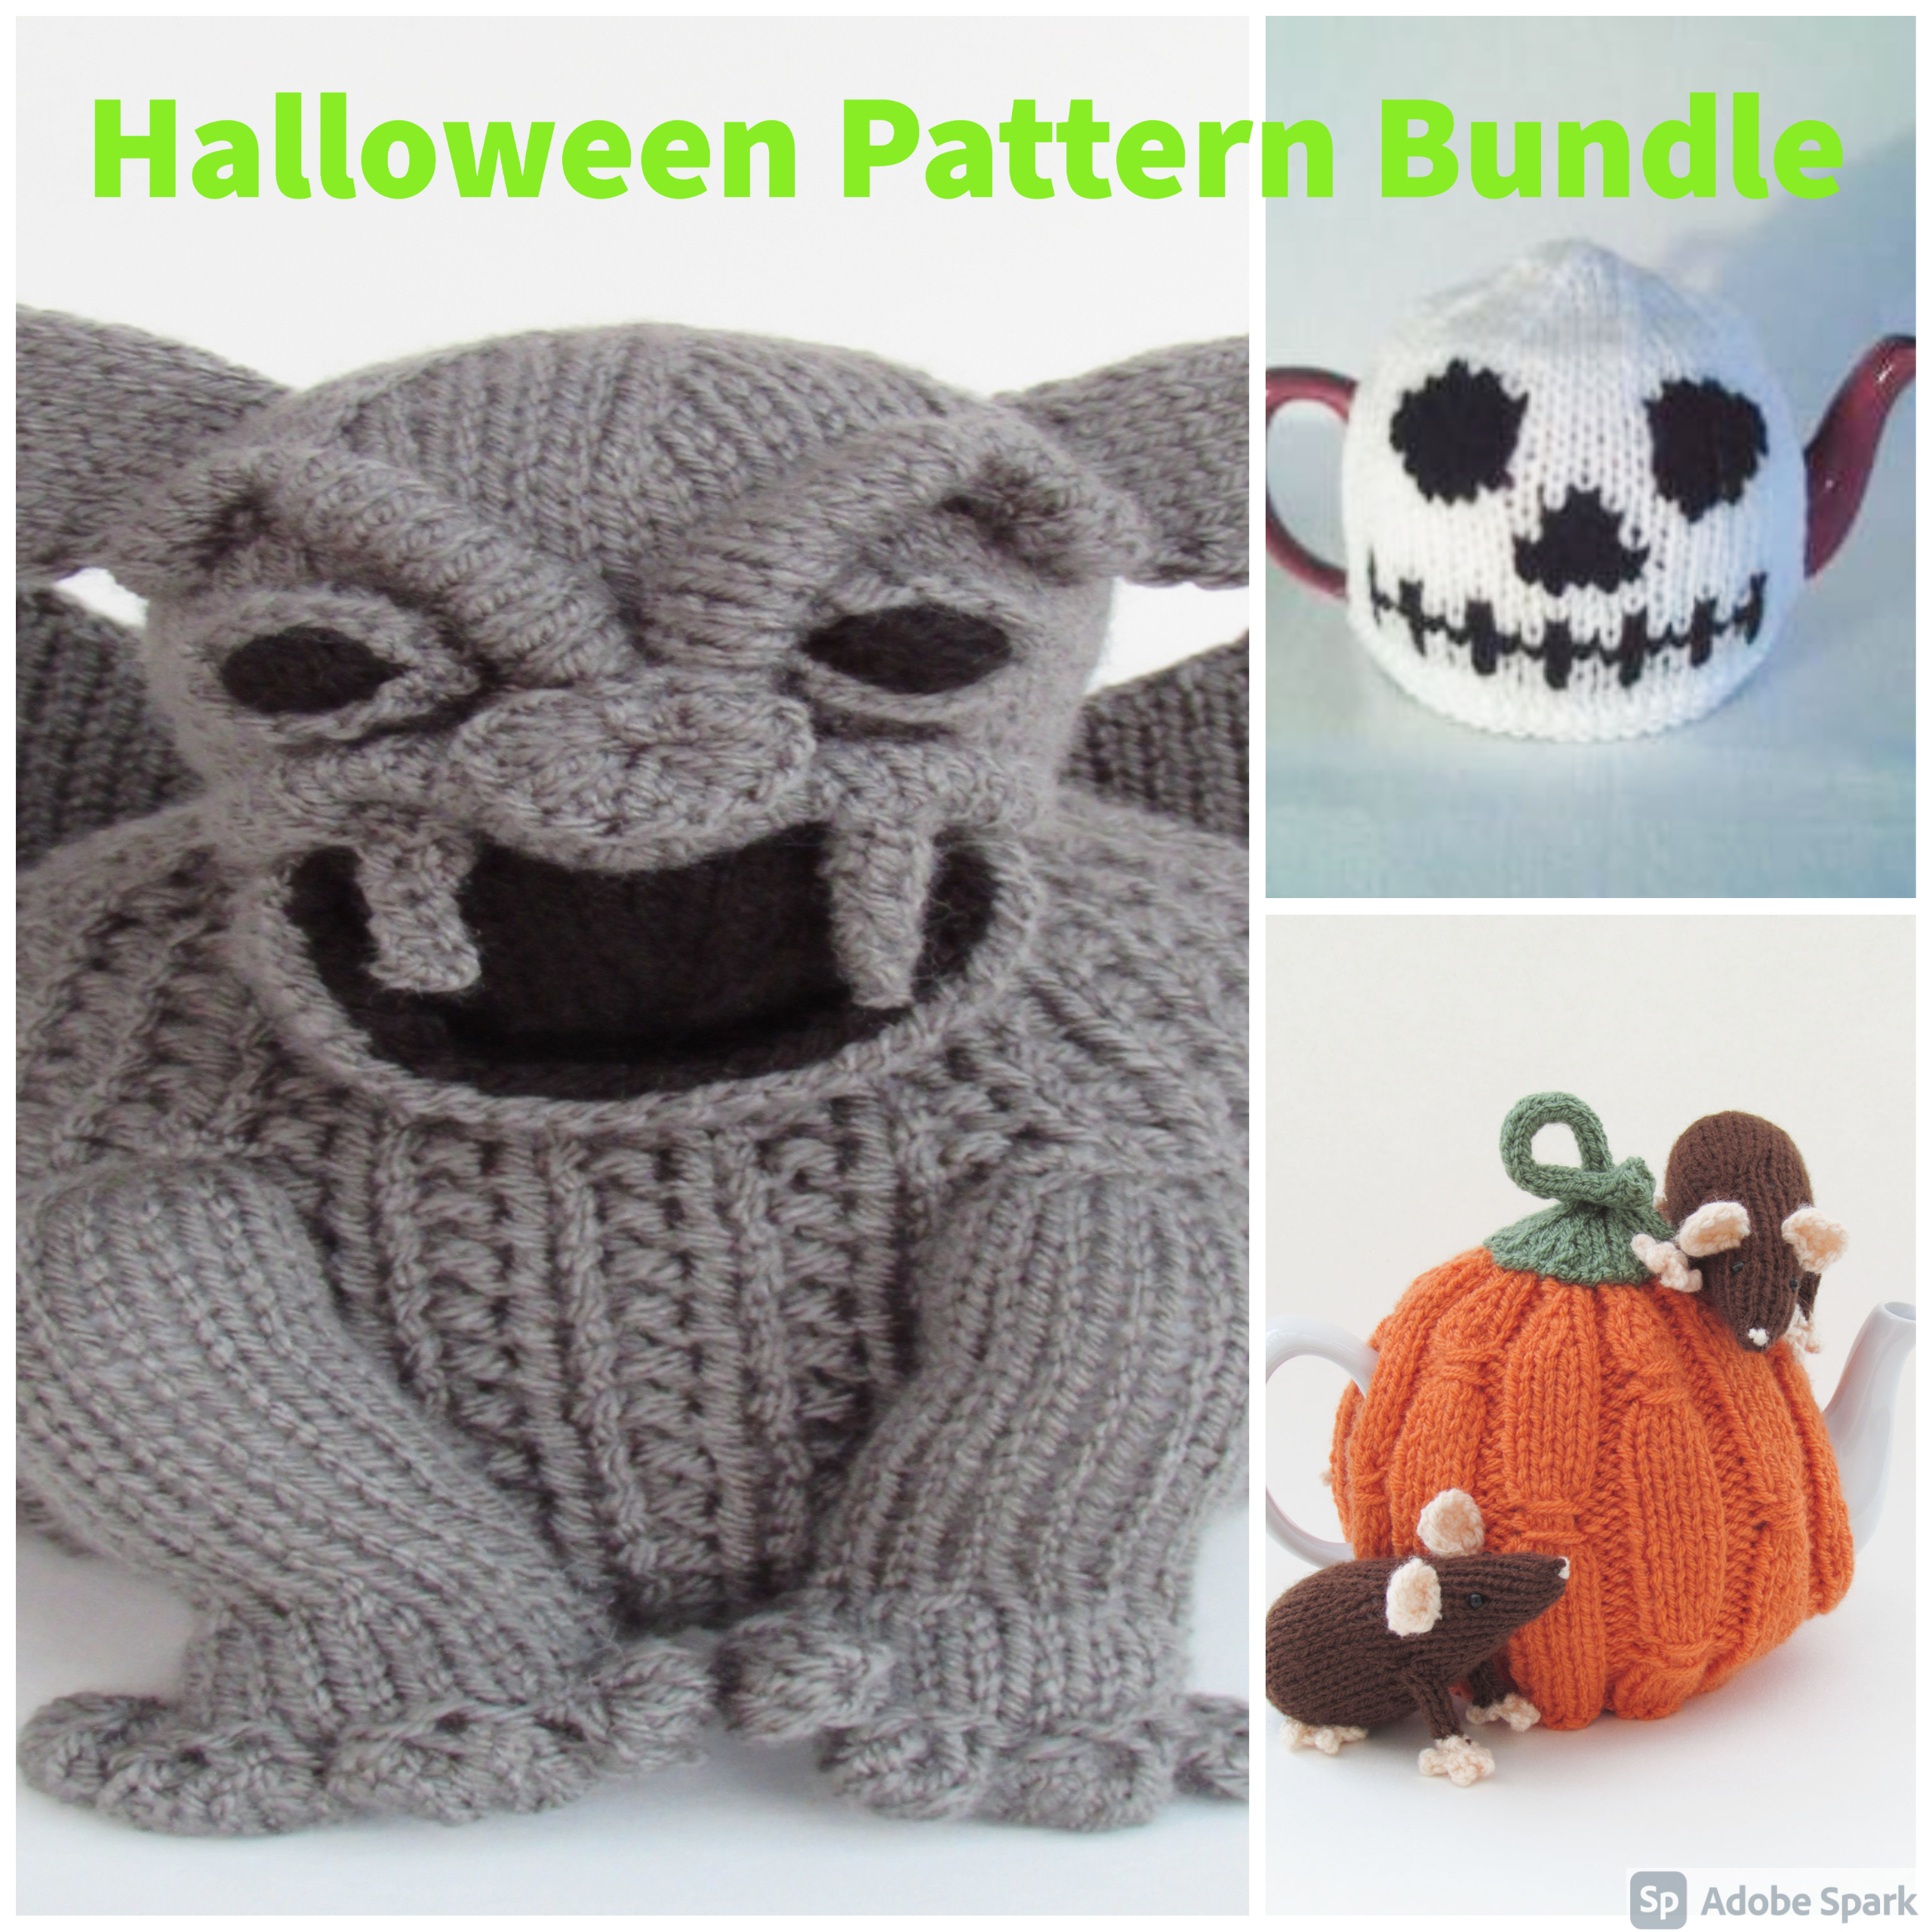 Halloween%20Tea%20Cosy%20Knitting%20Pattern%20Bundle